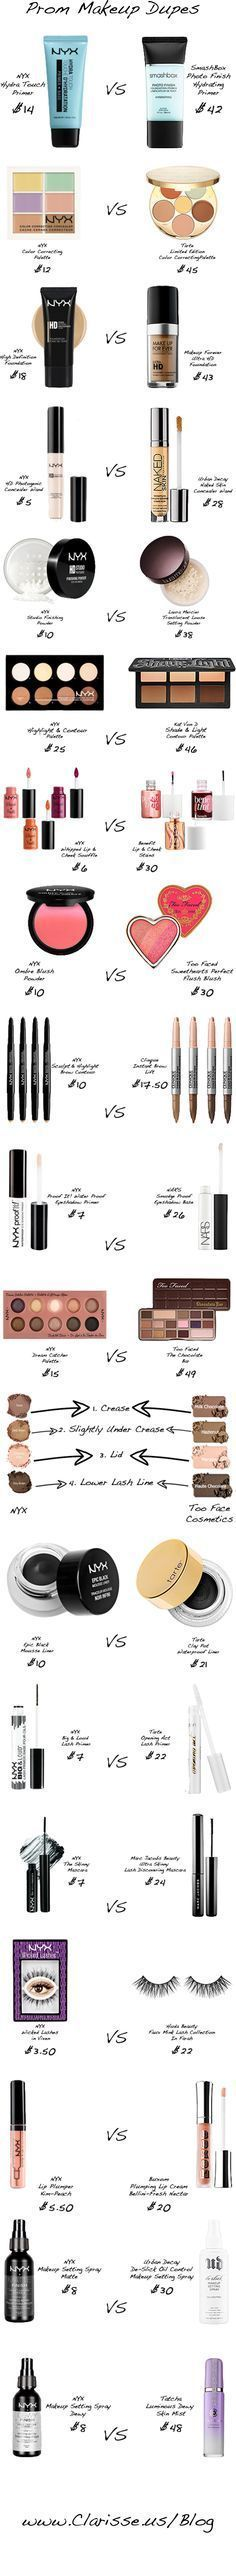 Do you love all those looks the beauty vlogger gurus show you how to do on youtube? Get those same great products but at half the price!! Click to read more about these amazing drugstore makeup dupes to create an AMAZING prom makeup look that will look great with any dress!! http://clarisse.us/blog /nyxcosmetics/